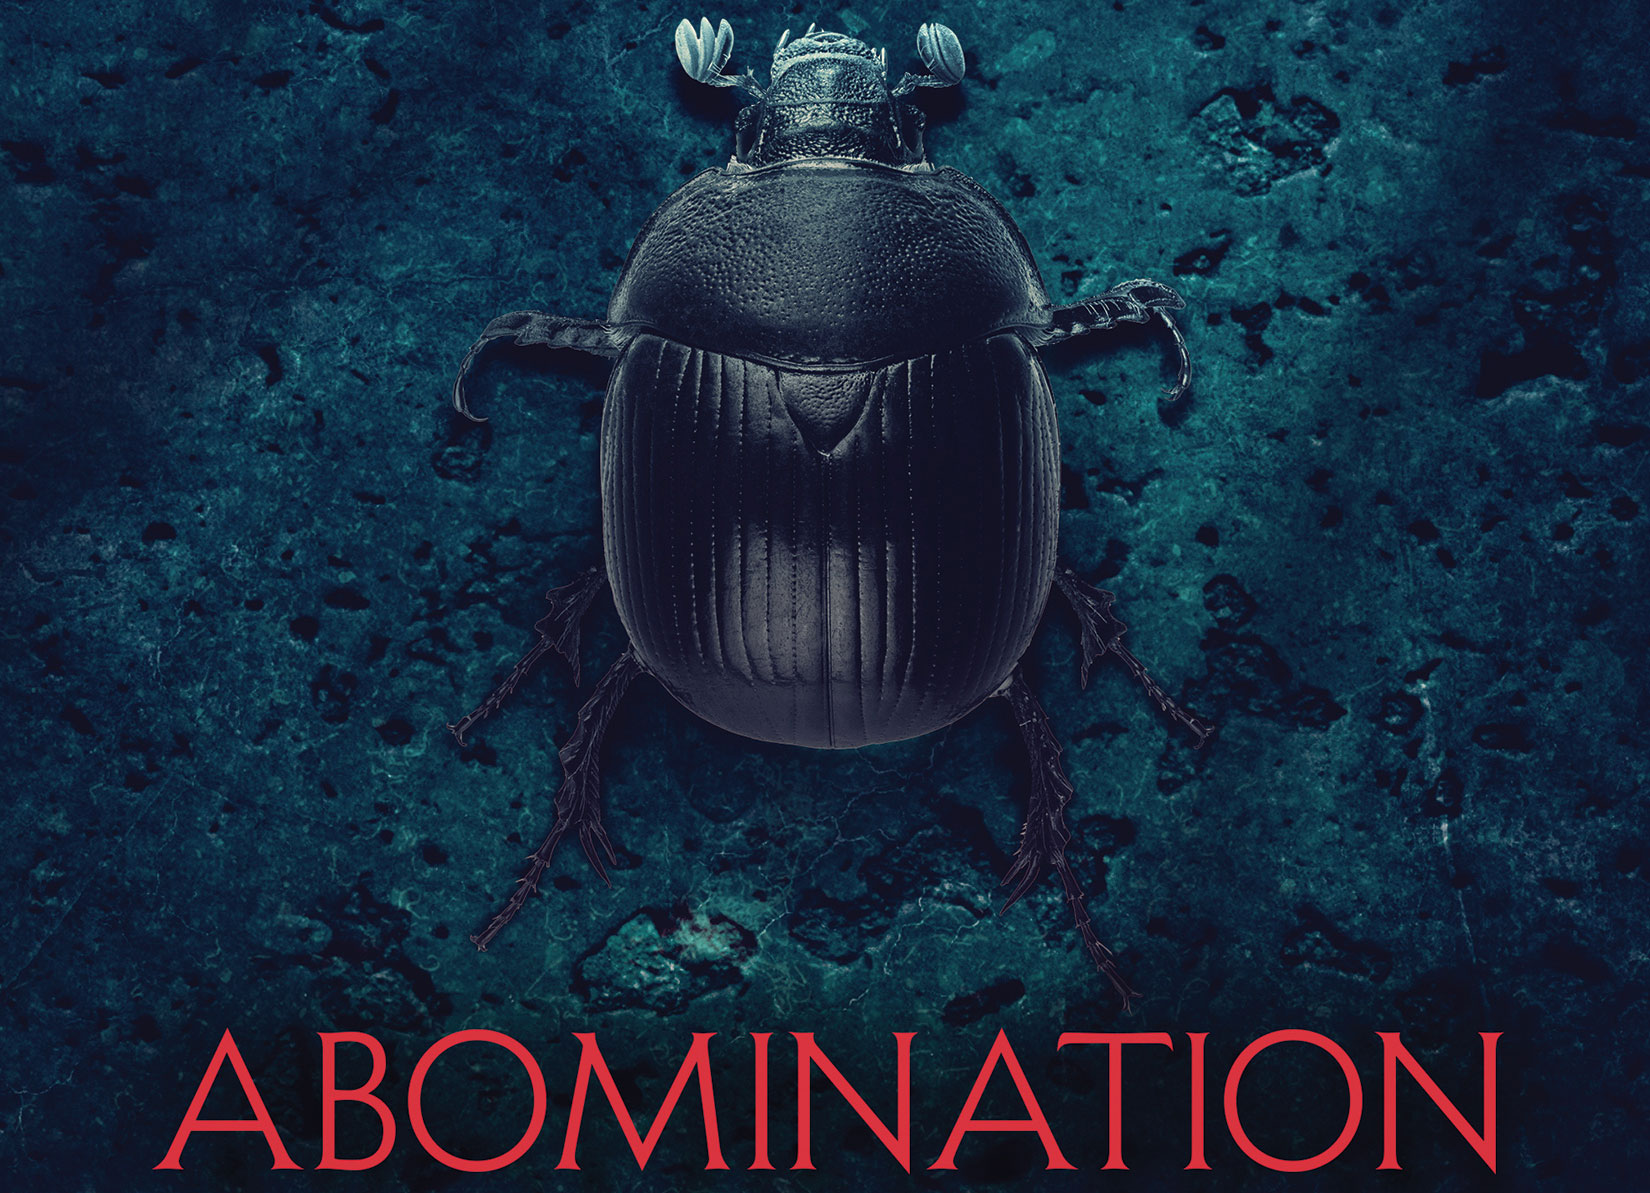 Whitta ABOMINATIONs - Author Gary Whitta Talks Abomination and the Monsters Within Us All